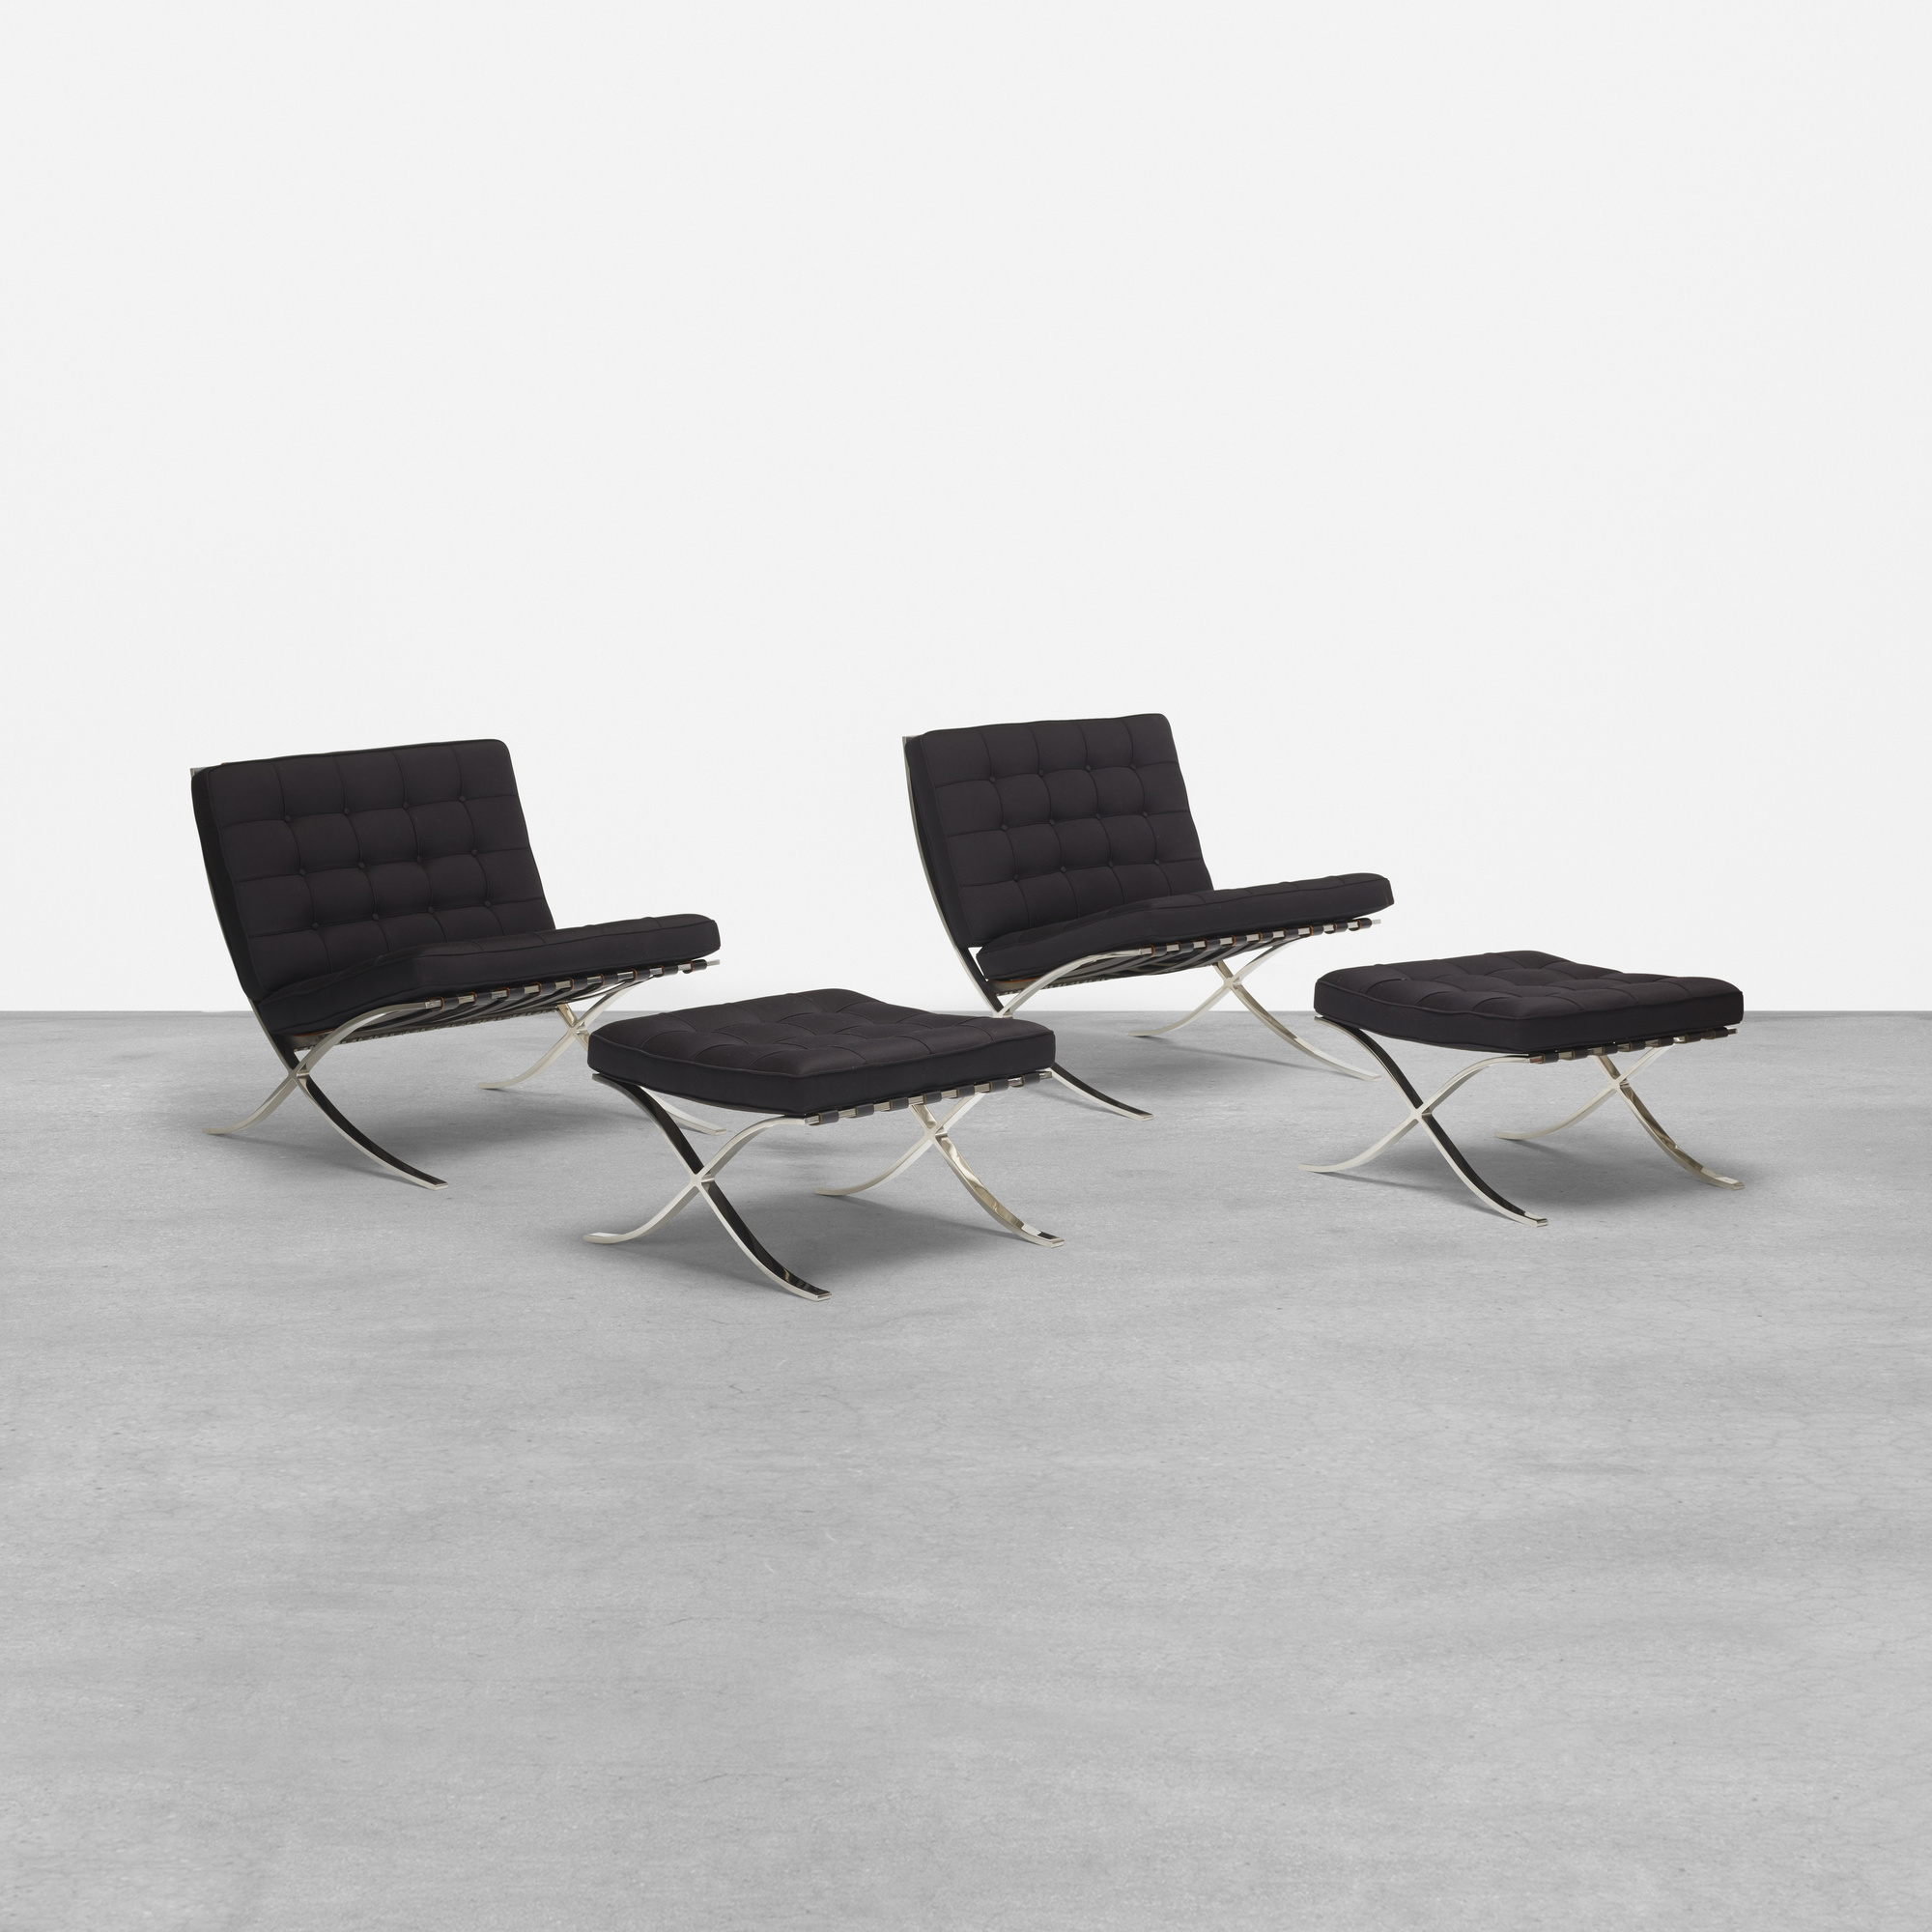 150: Ludwig Mies Van Der Rohe / Pair Of Barcelona Chairs And Ottomans (1